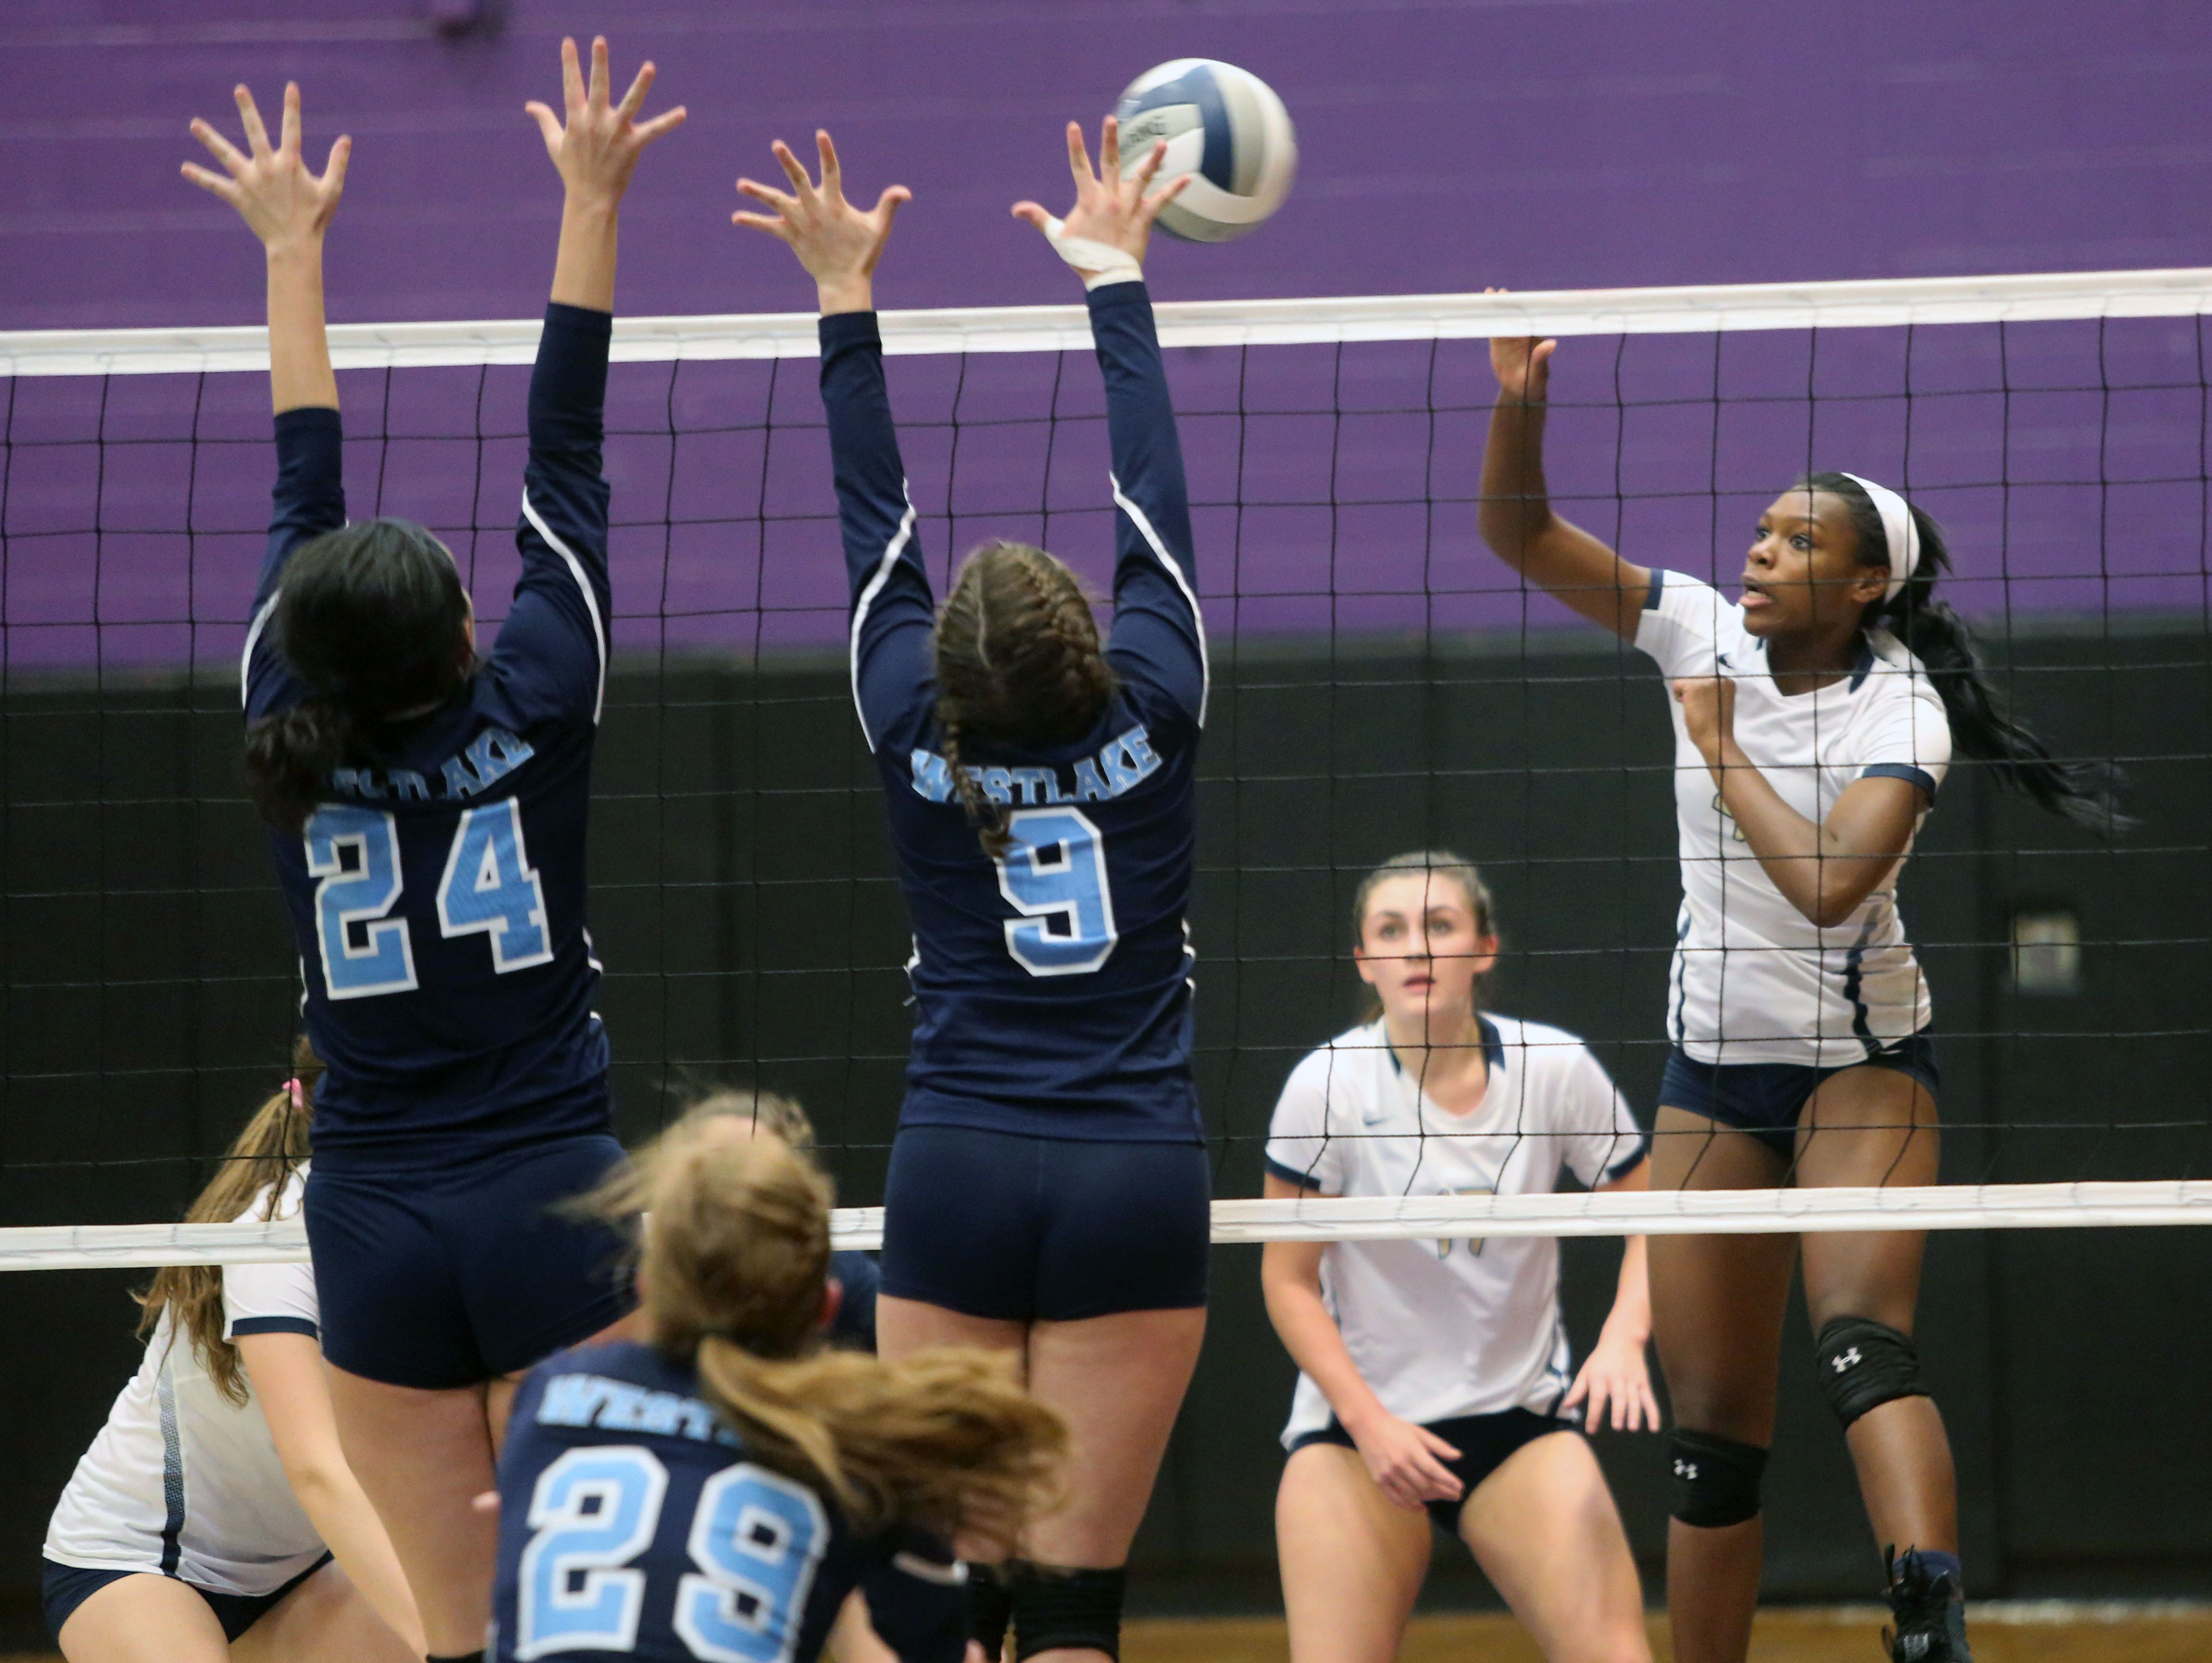 Lourdes' Rebecca Townes hits the ball toward Westlake''s Kelly Martin and Antonia Perino during the Section 1 Class B volleyball final at John Jay High School in Cross River, Nov. 5, 2016.